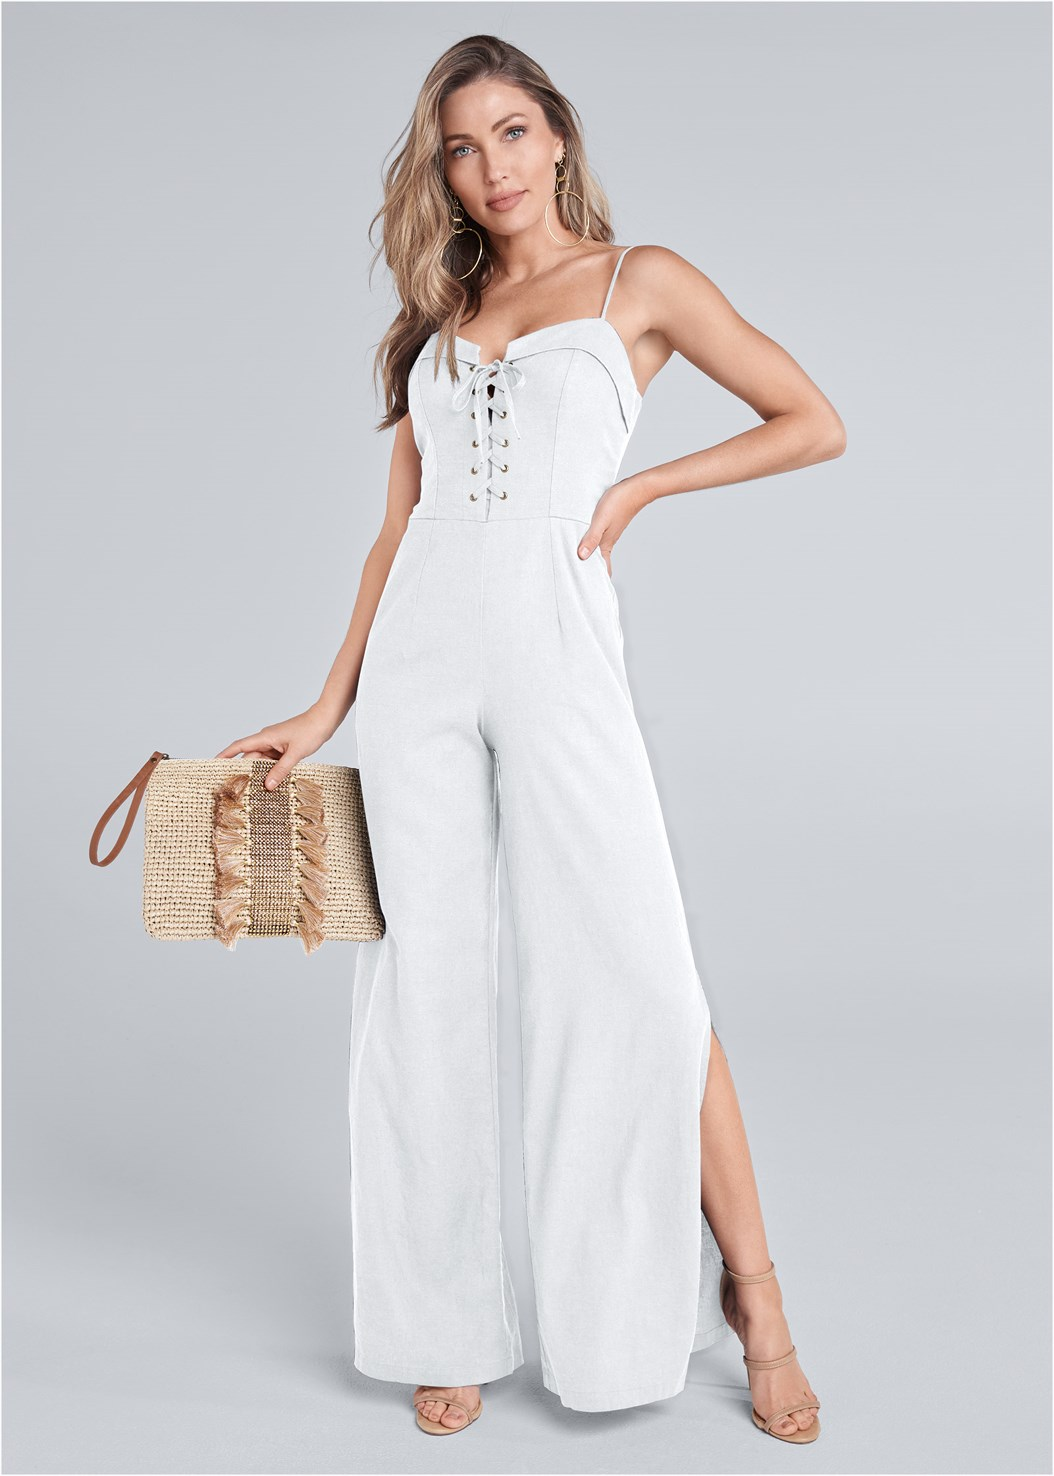 Lace Up Linen Jumpsuit,High Heel Strappy Sandals,Hoop Earrings,Embellished Tassel Clutch